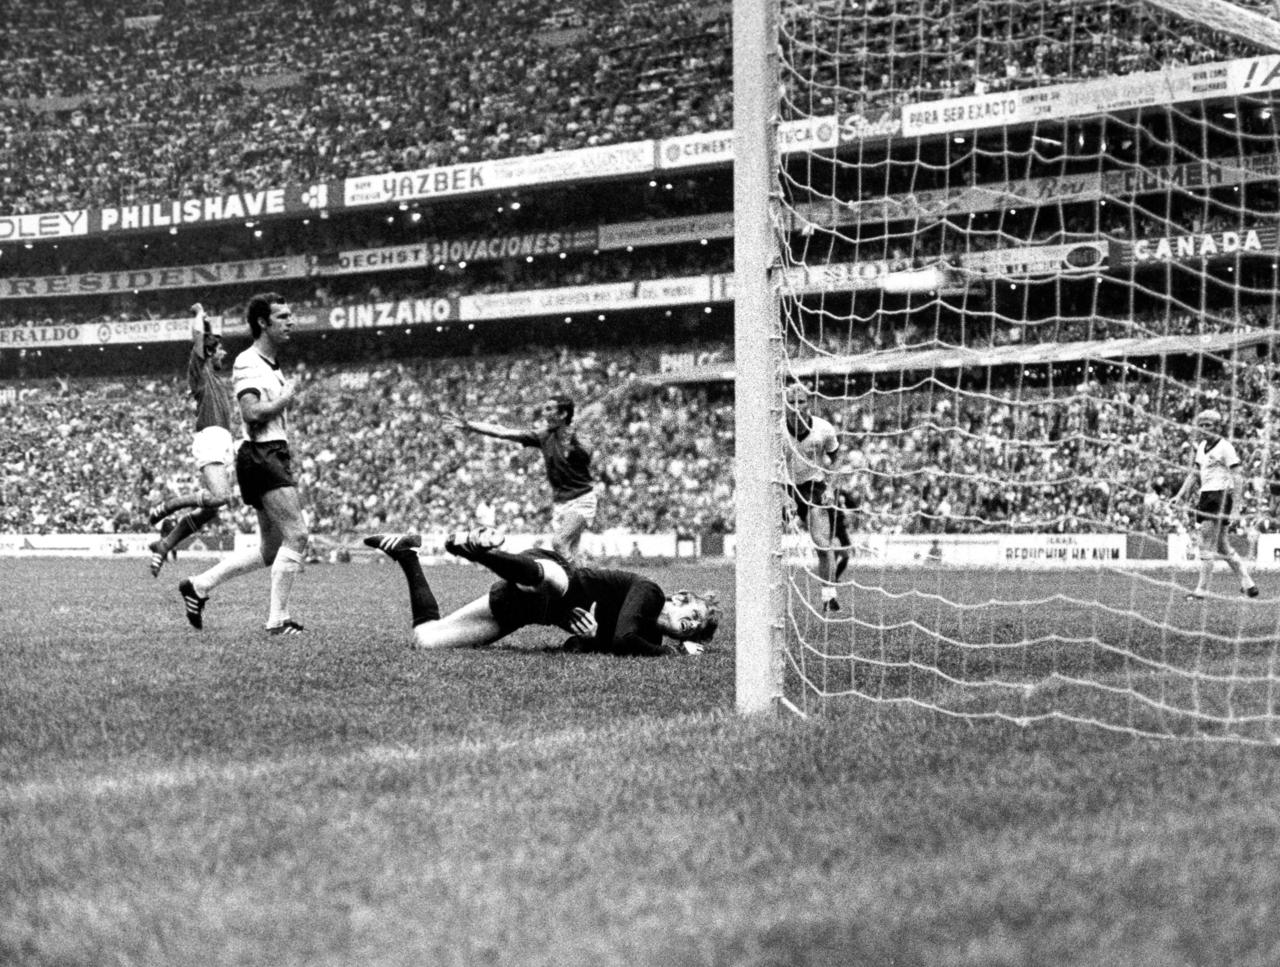 After Rivera's goal against West Germany, World Cup 1970.